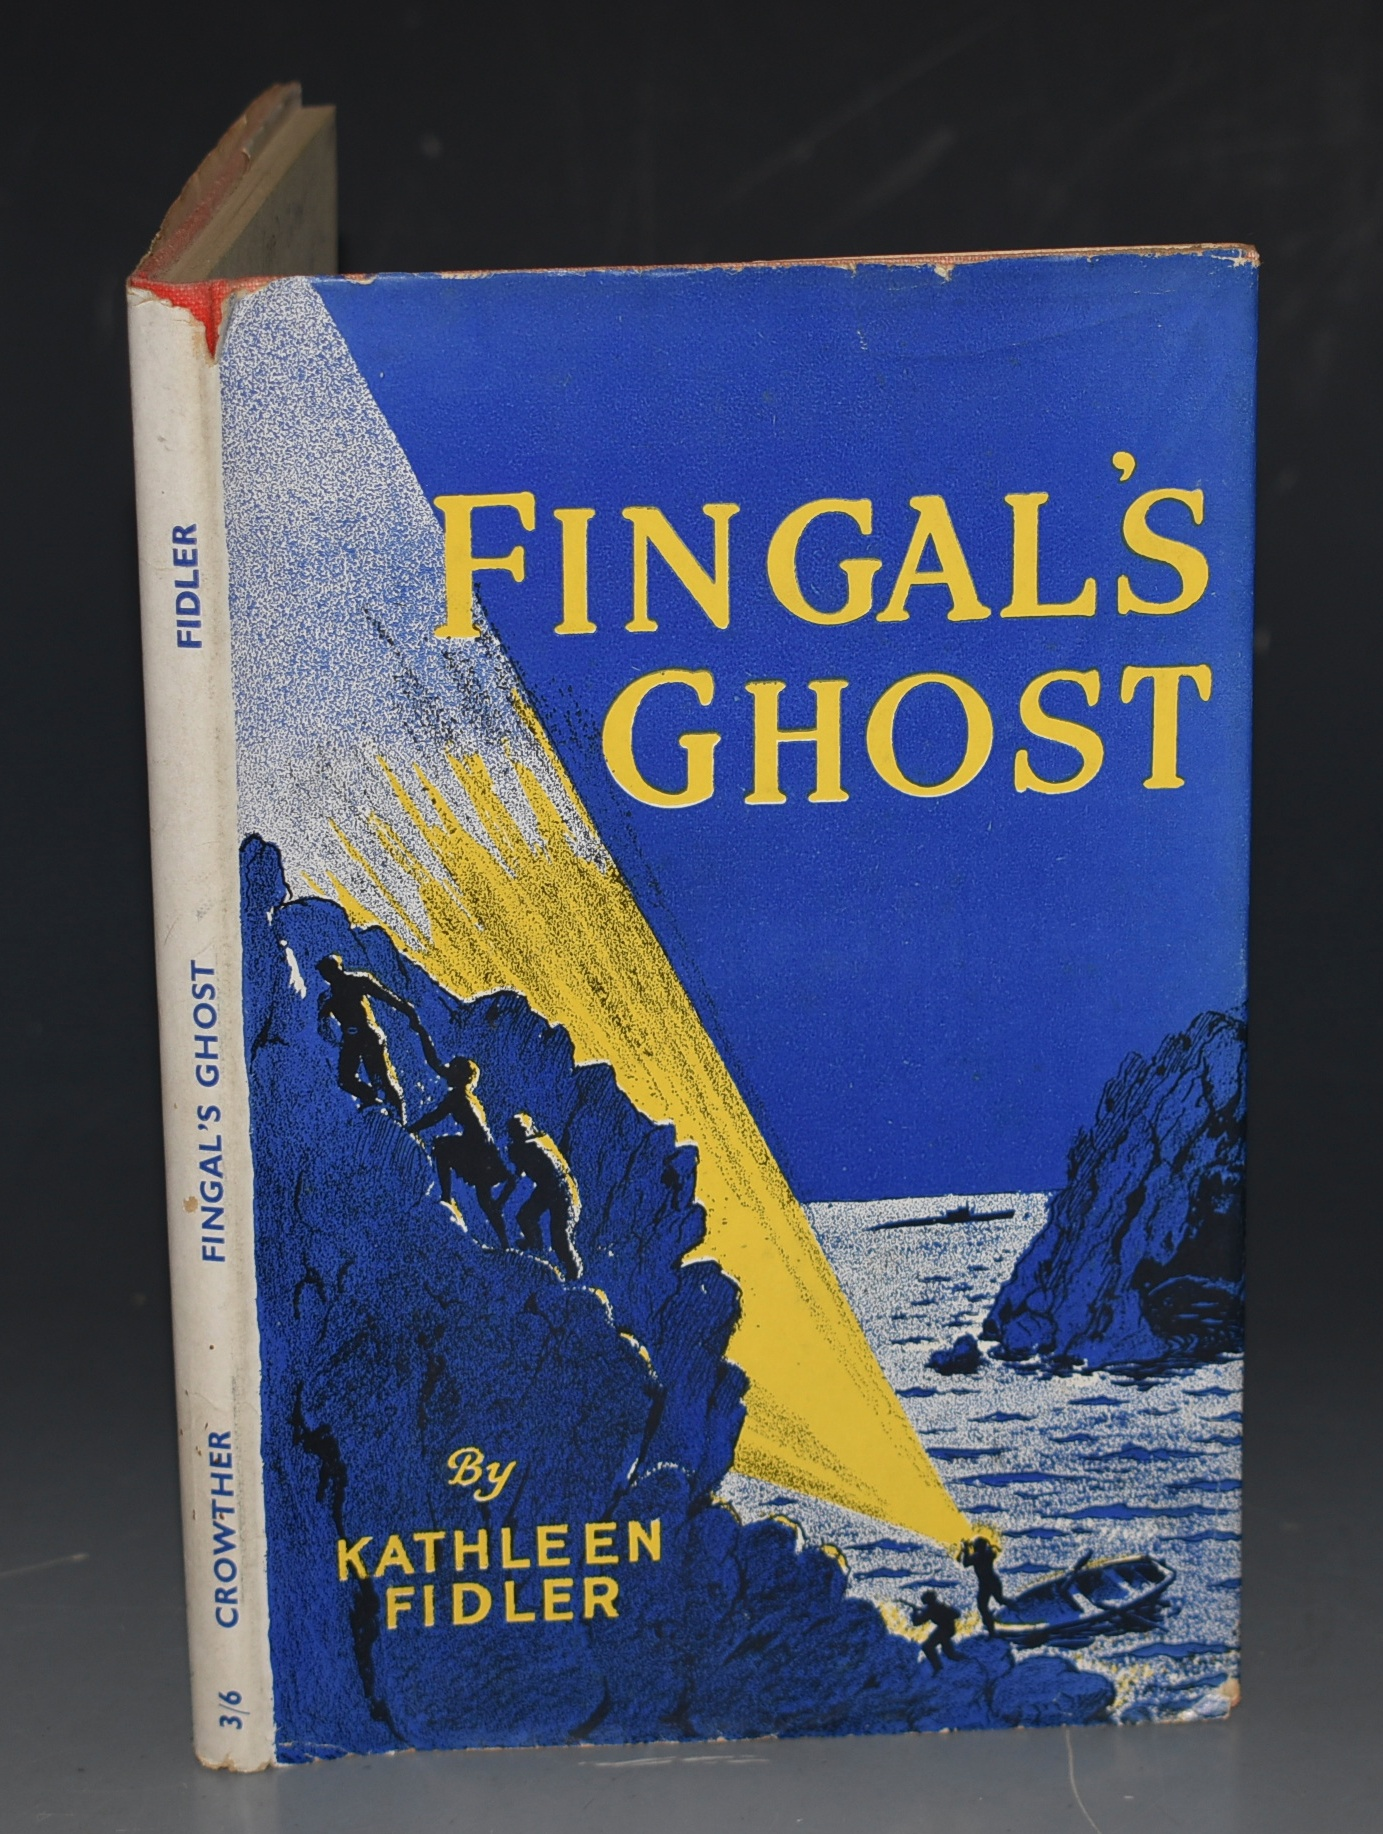 Image for Fingal's Ghost. An adventure story based on the radio play of the same name.